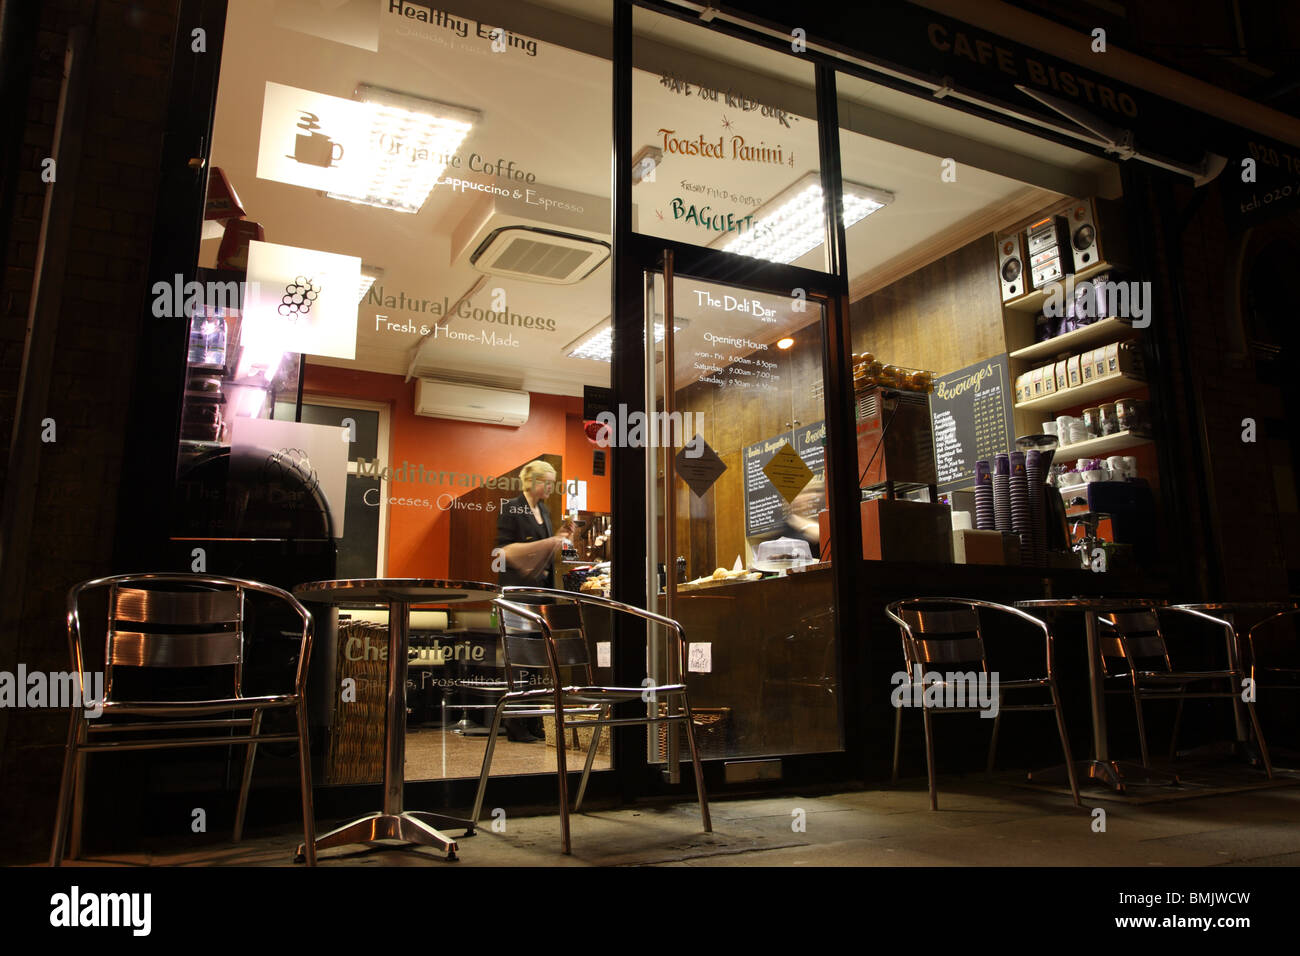 Vue de nuit sur un café à West Kensington, London, W14. Photo Stock